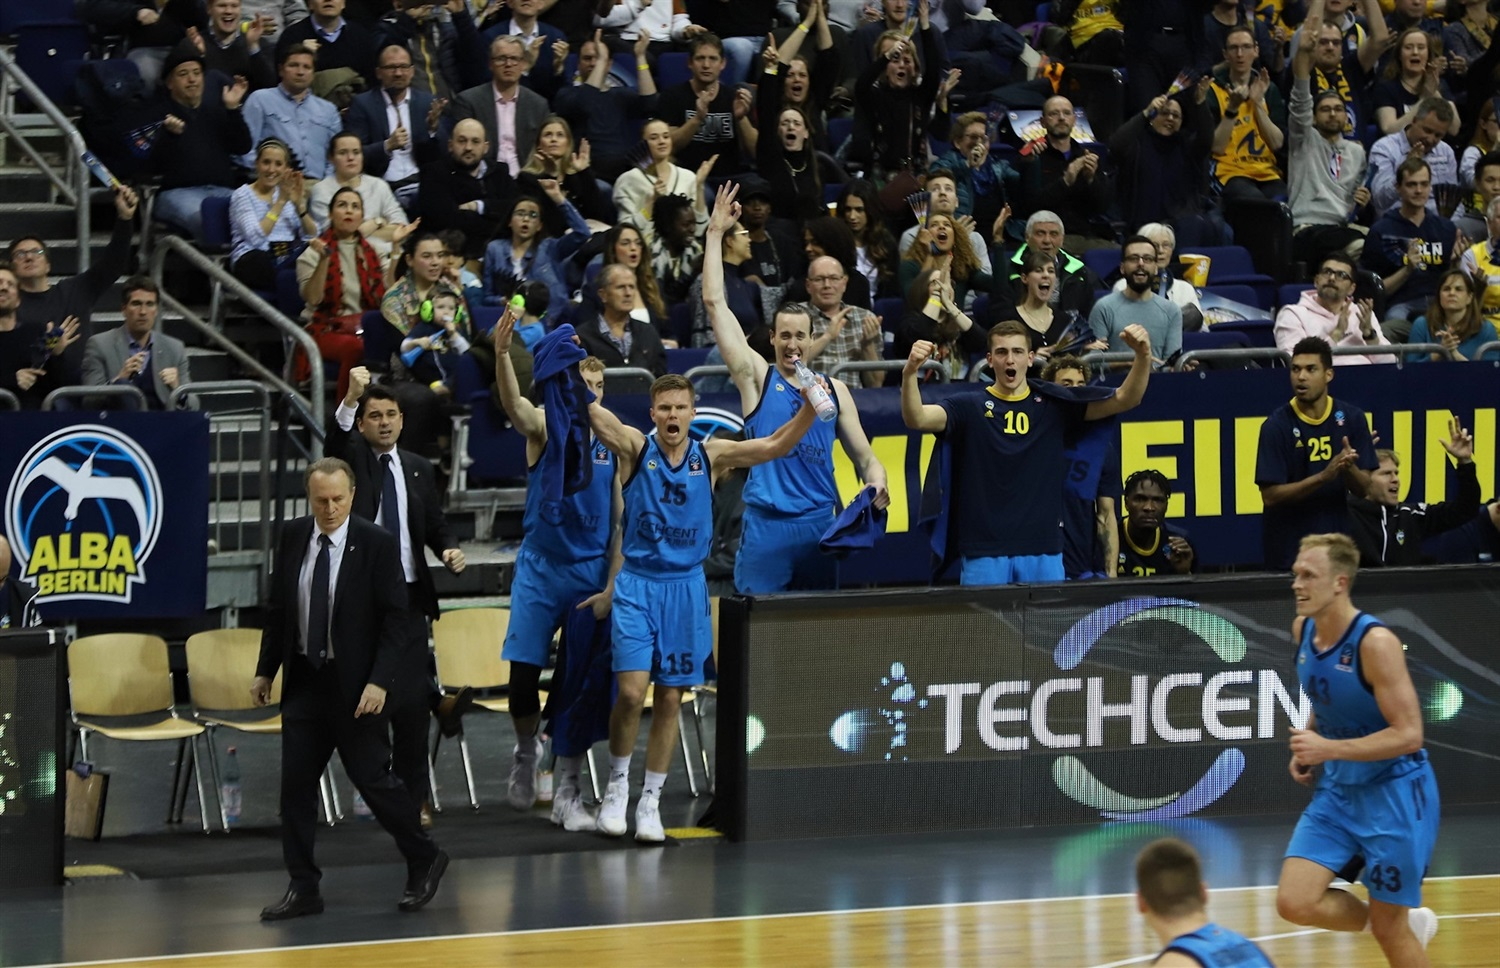 ALBA Berlin celebrates (photo Andreas Knopf - ALBA) - EC18